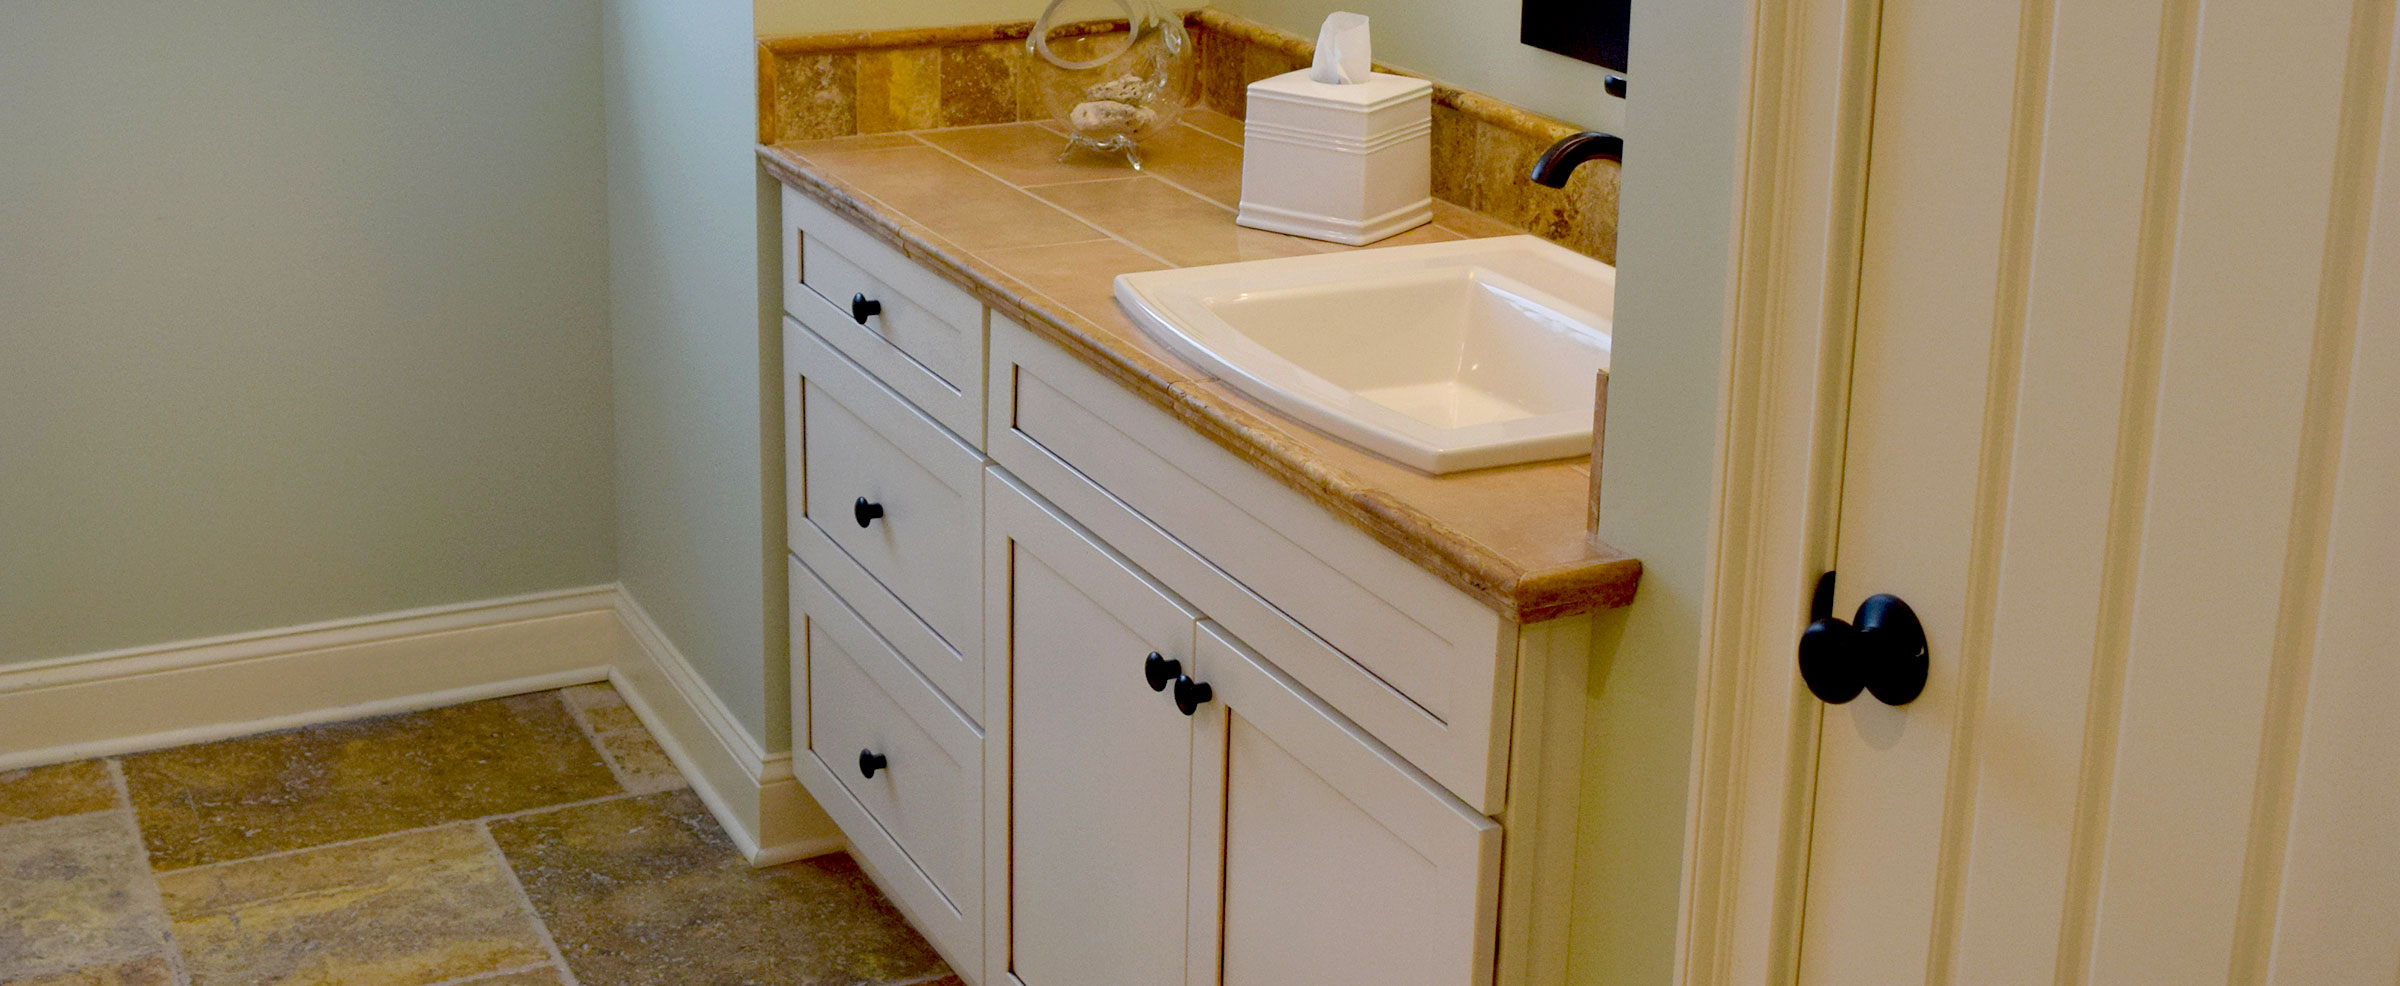 American kitchen bath renewal cabinet refacing and full for Renew bathroom